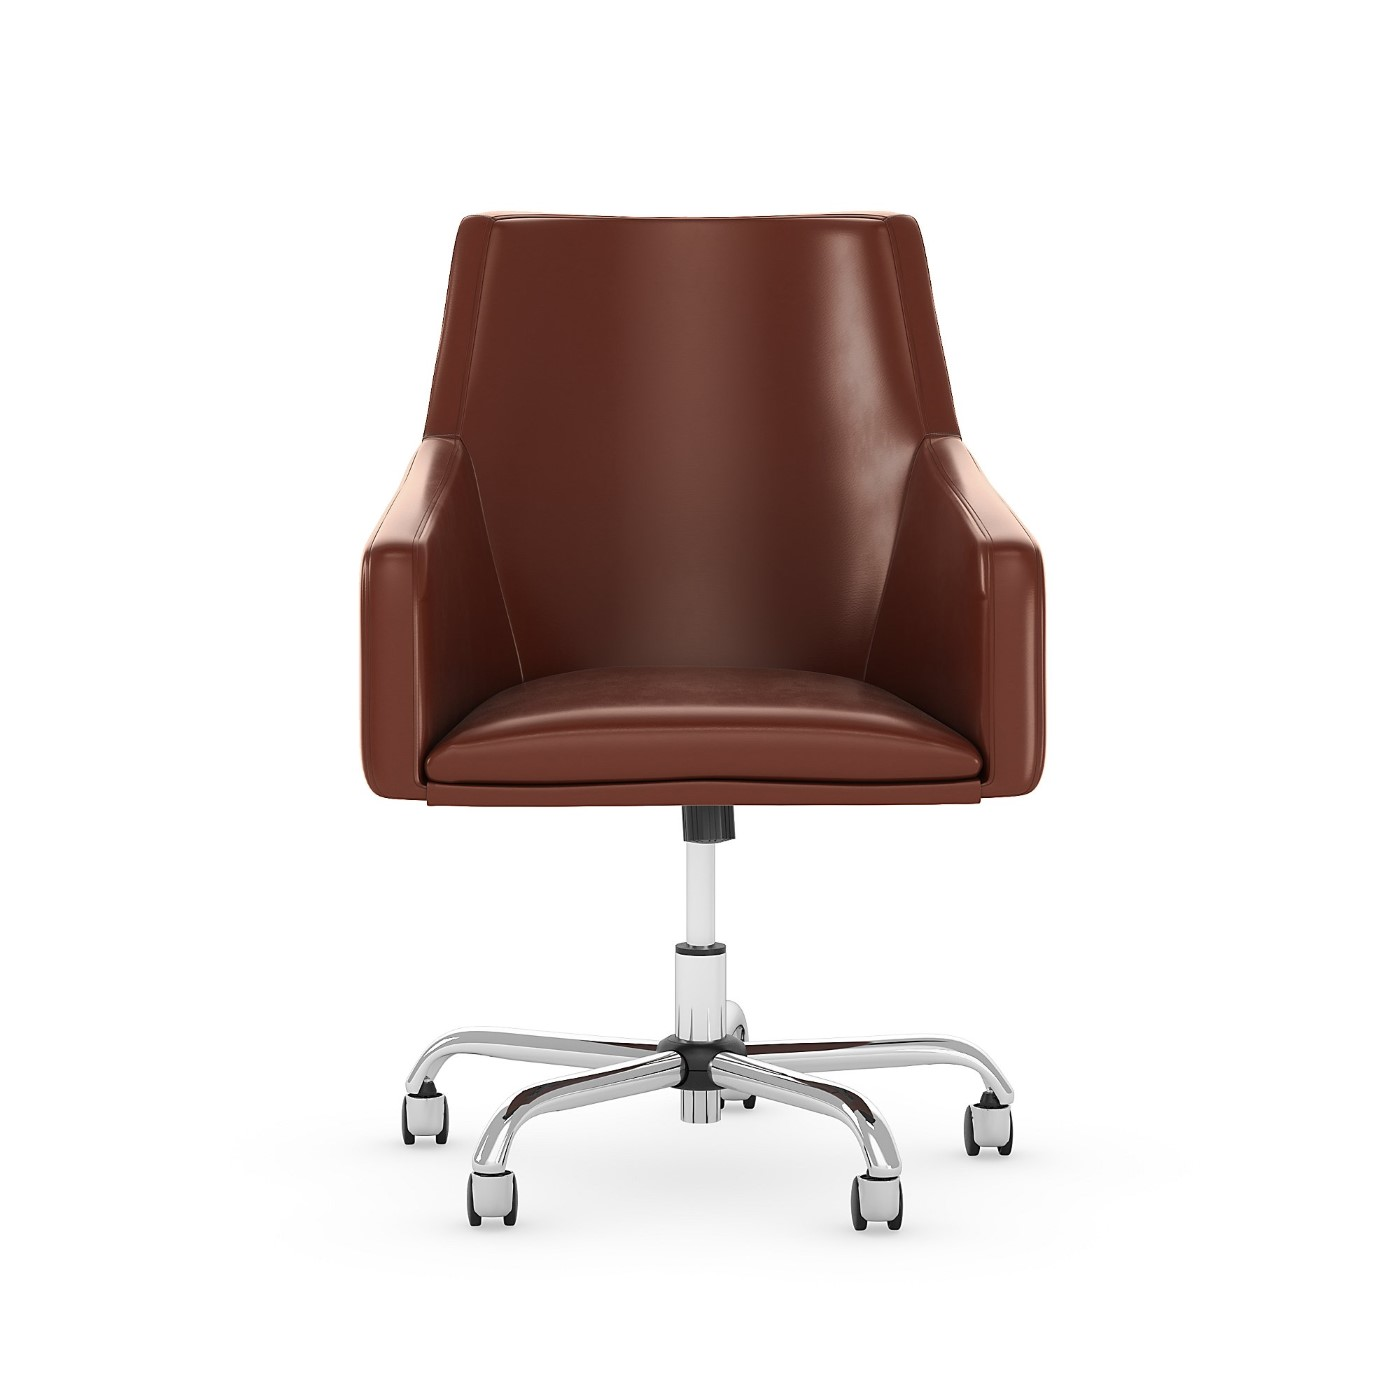 <font color=#c60><b>BUSH BUSINESS FURNITURE LONDON MID BACK LEATHER BOX CHAIR. FREE SHIPPING 30H x 72L x 72W</font></b>